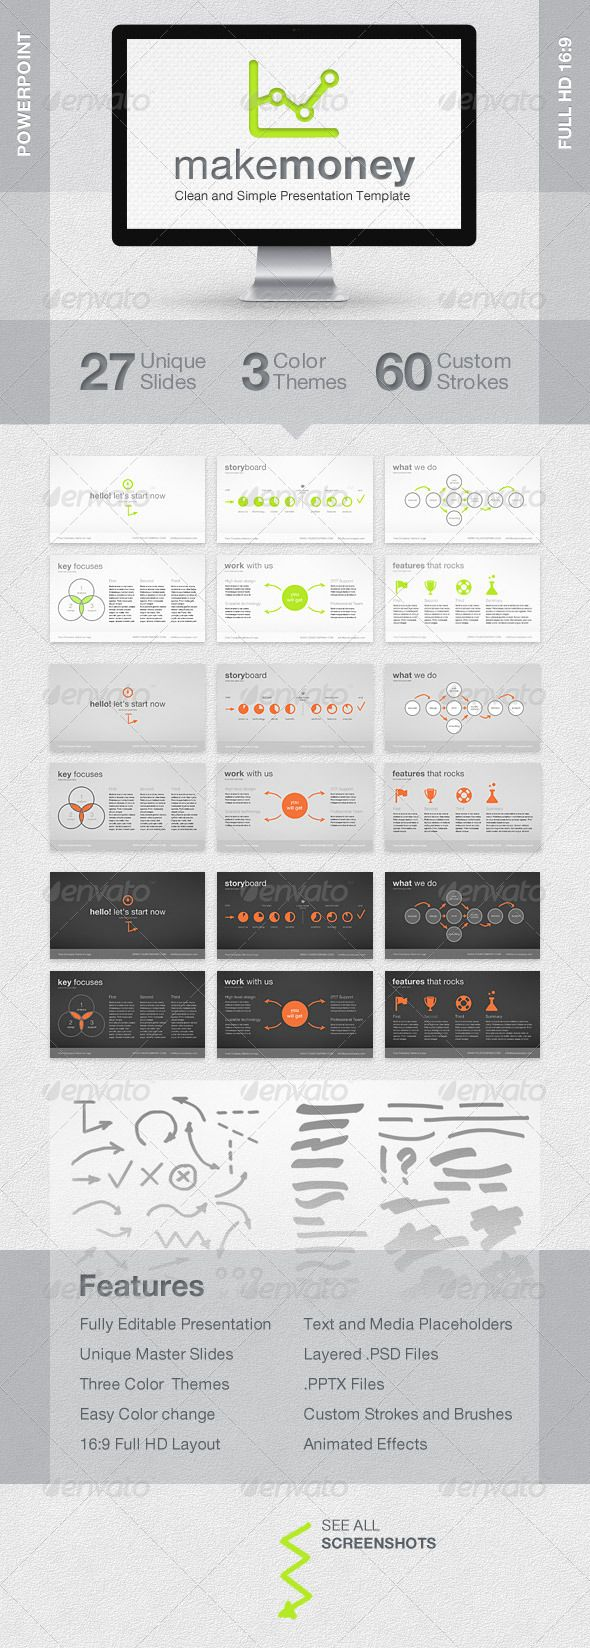 MakeMoney Powerpoint Presentation Template